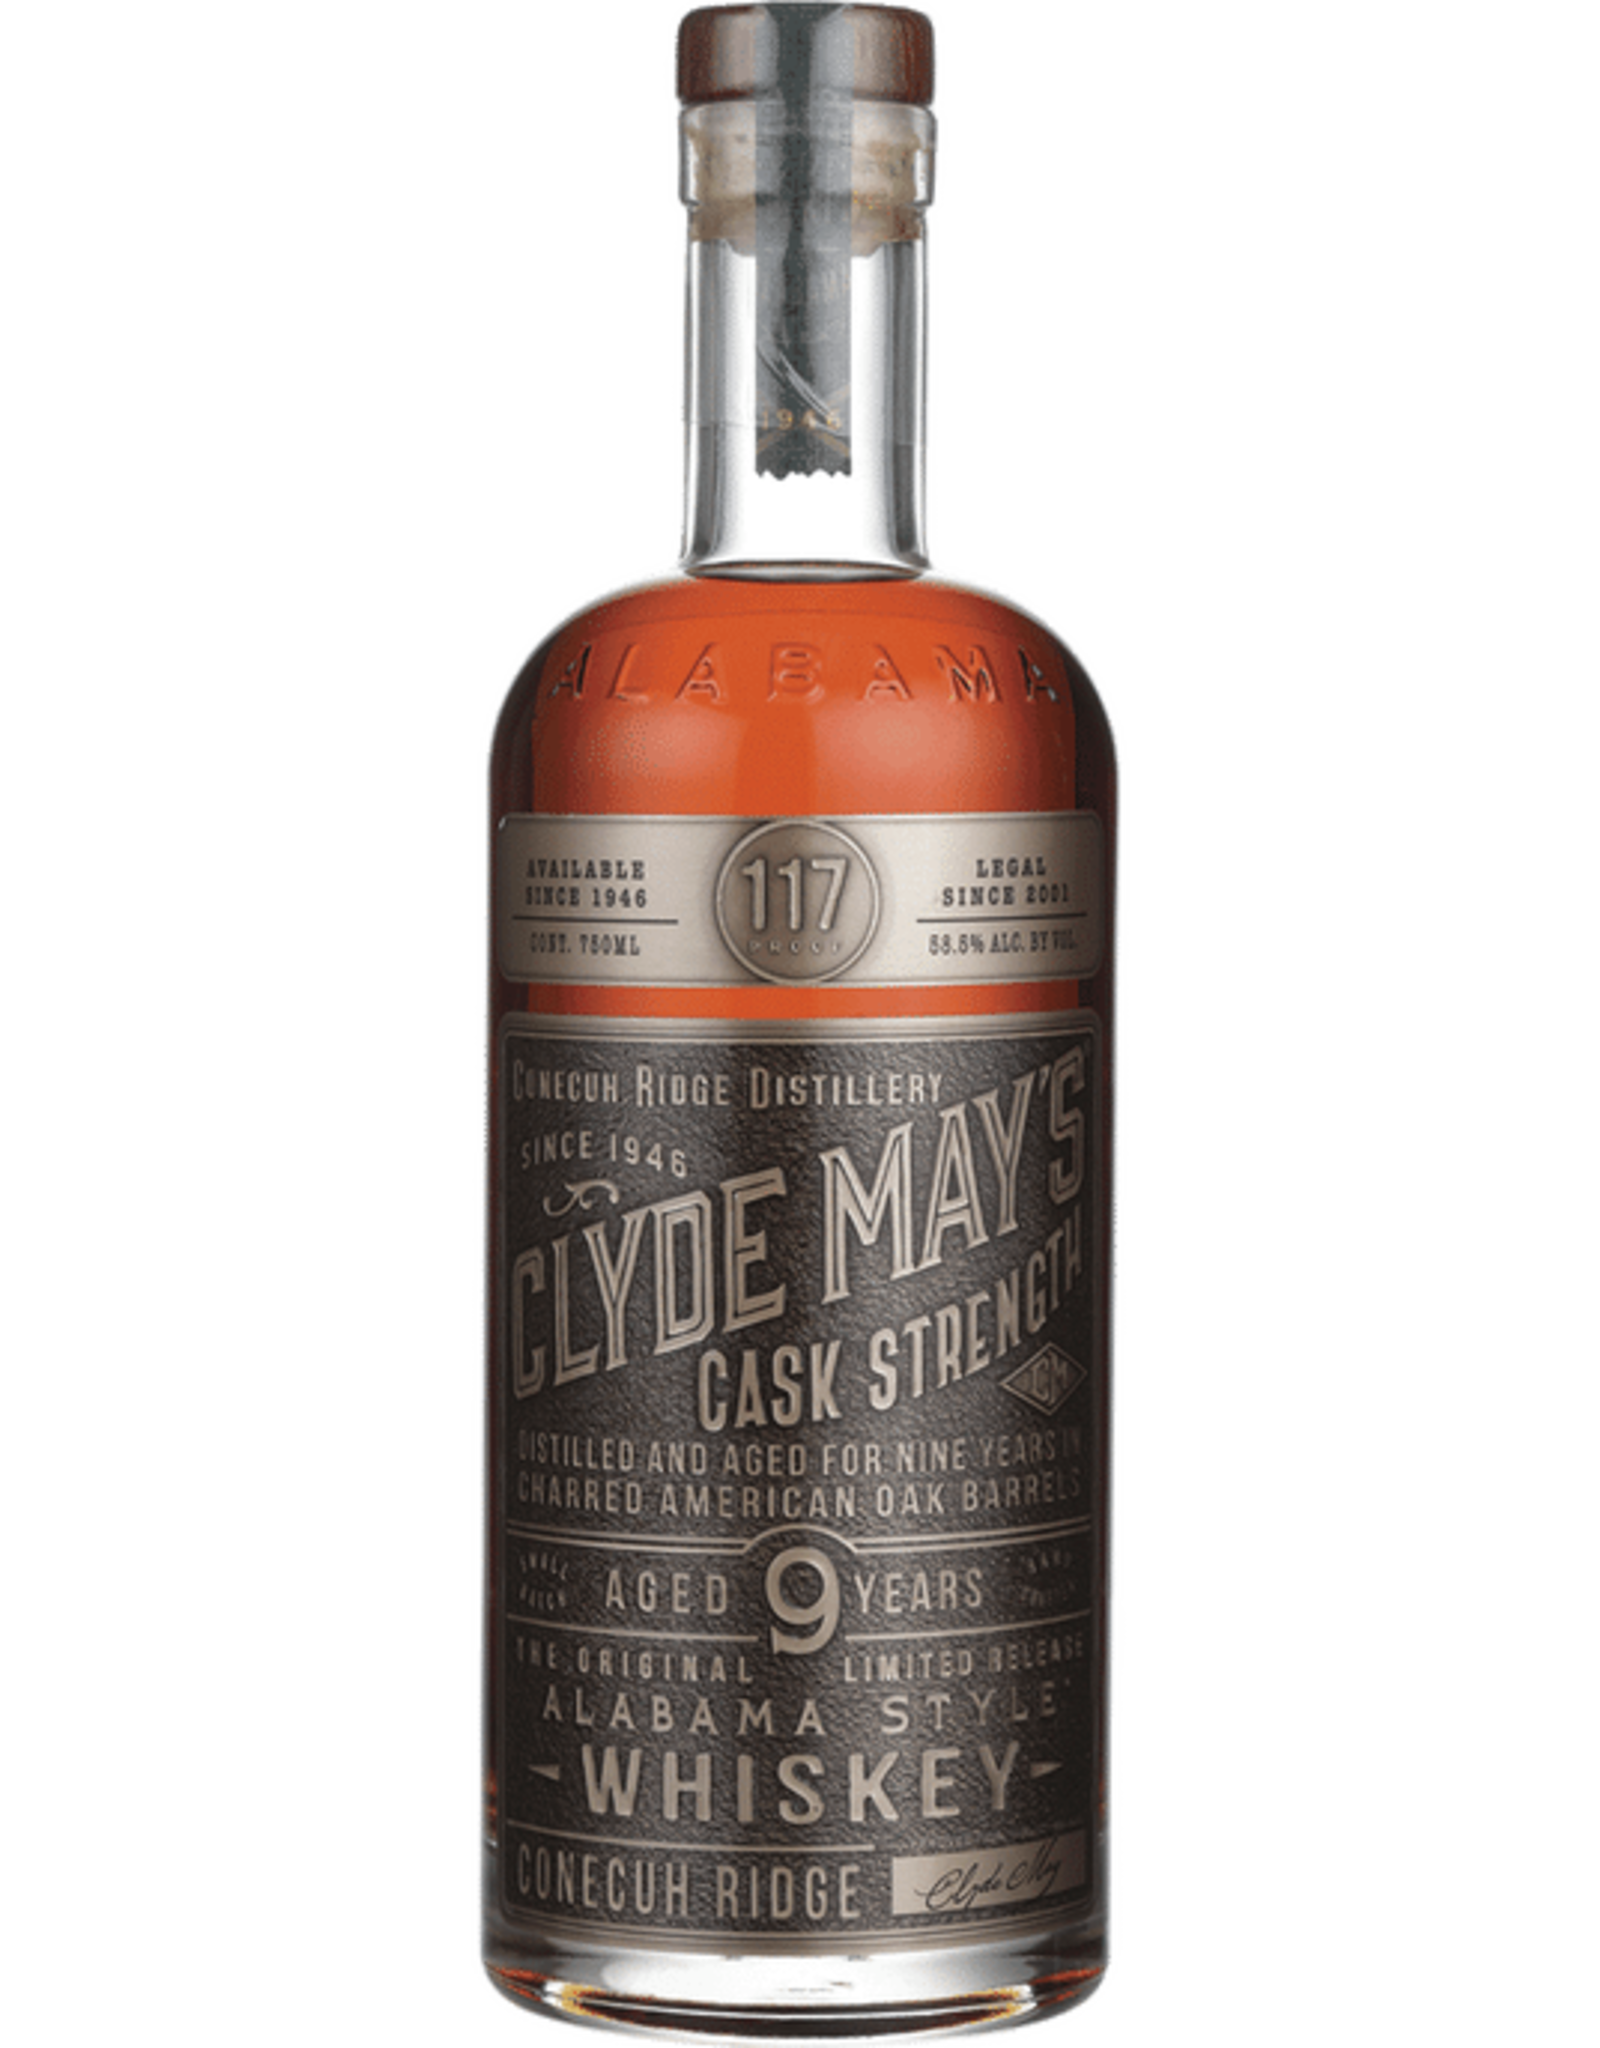 Clyde May's Cask Strength 9 year Alabama Whiskey